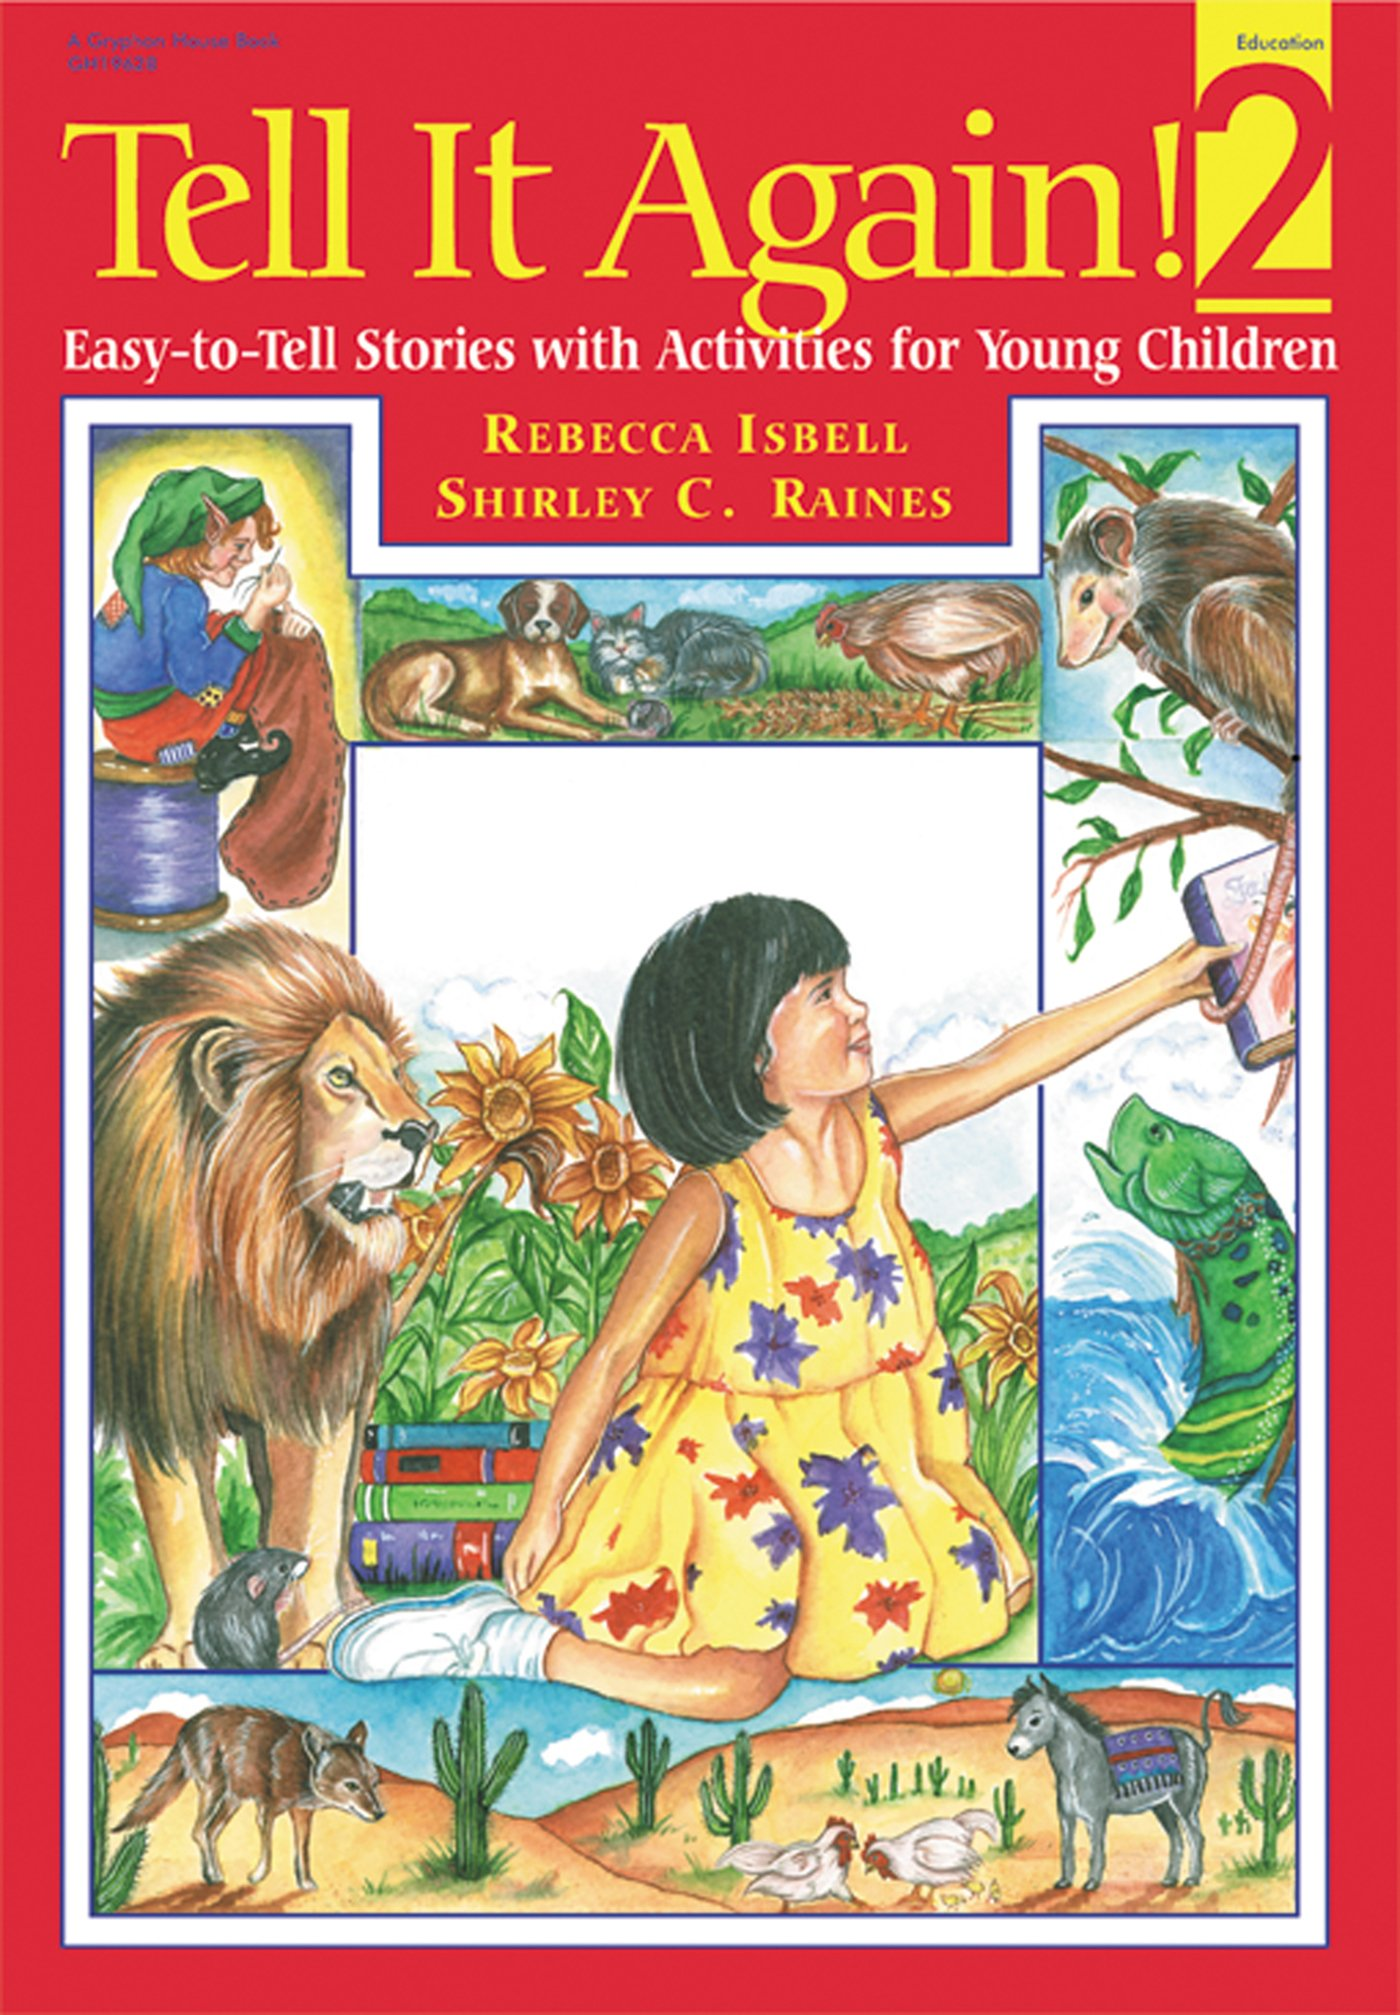 Download Tell It Again! 2: More Easy-to-Tell Stories with Activities for Young Children ebook